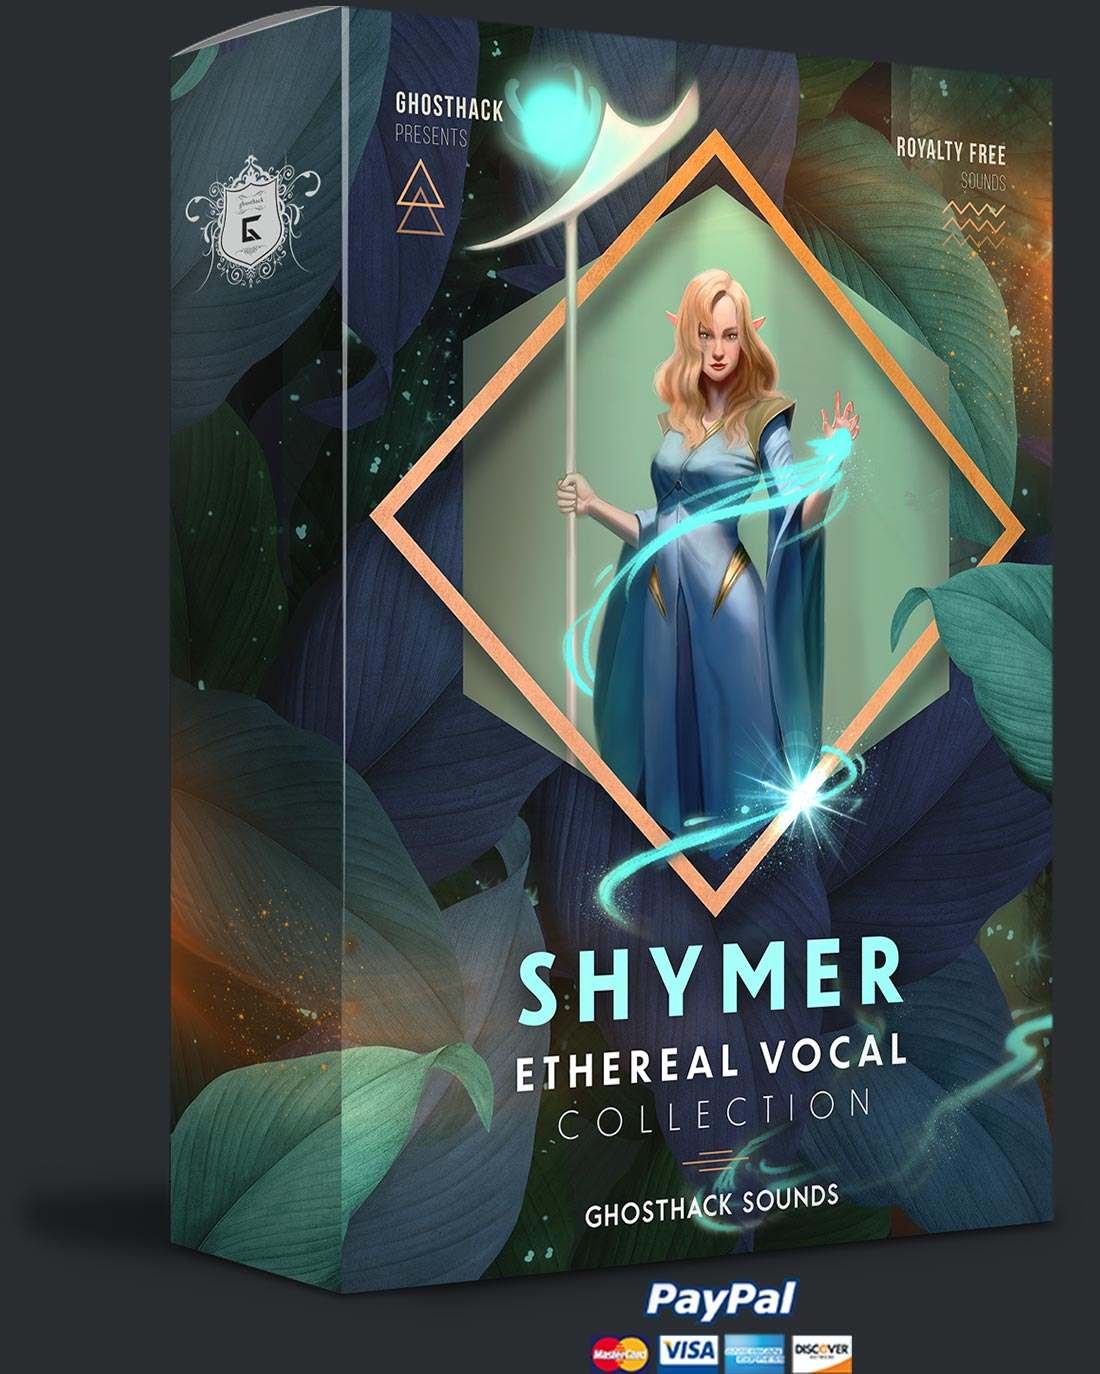 Shymer - Ethereal Vocal Collection